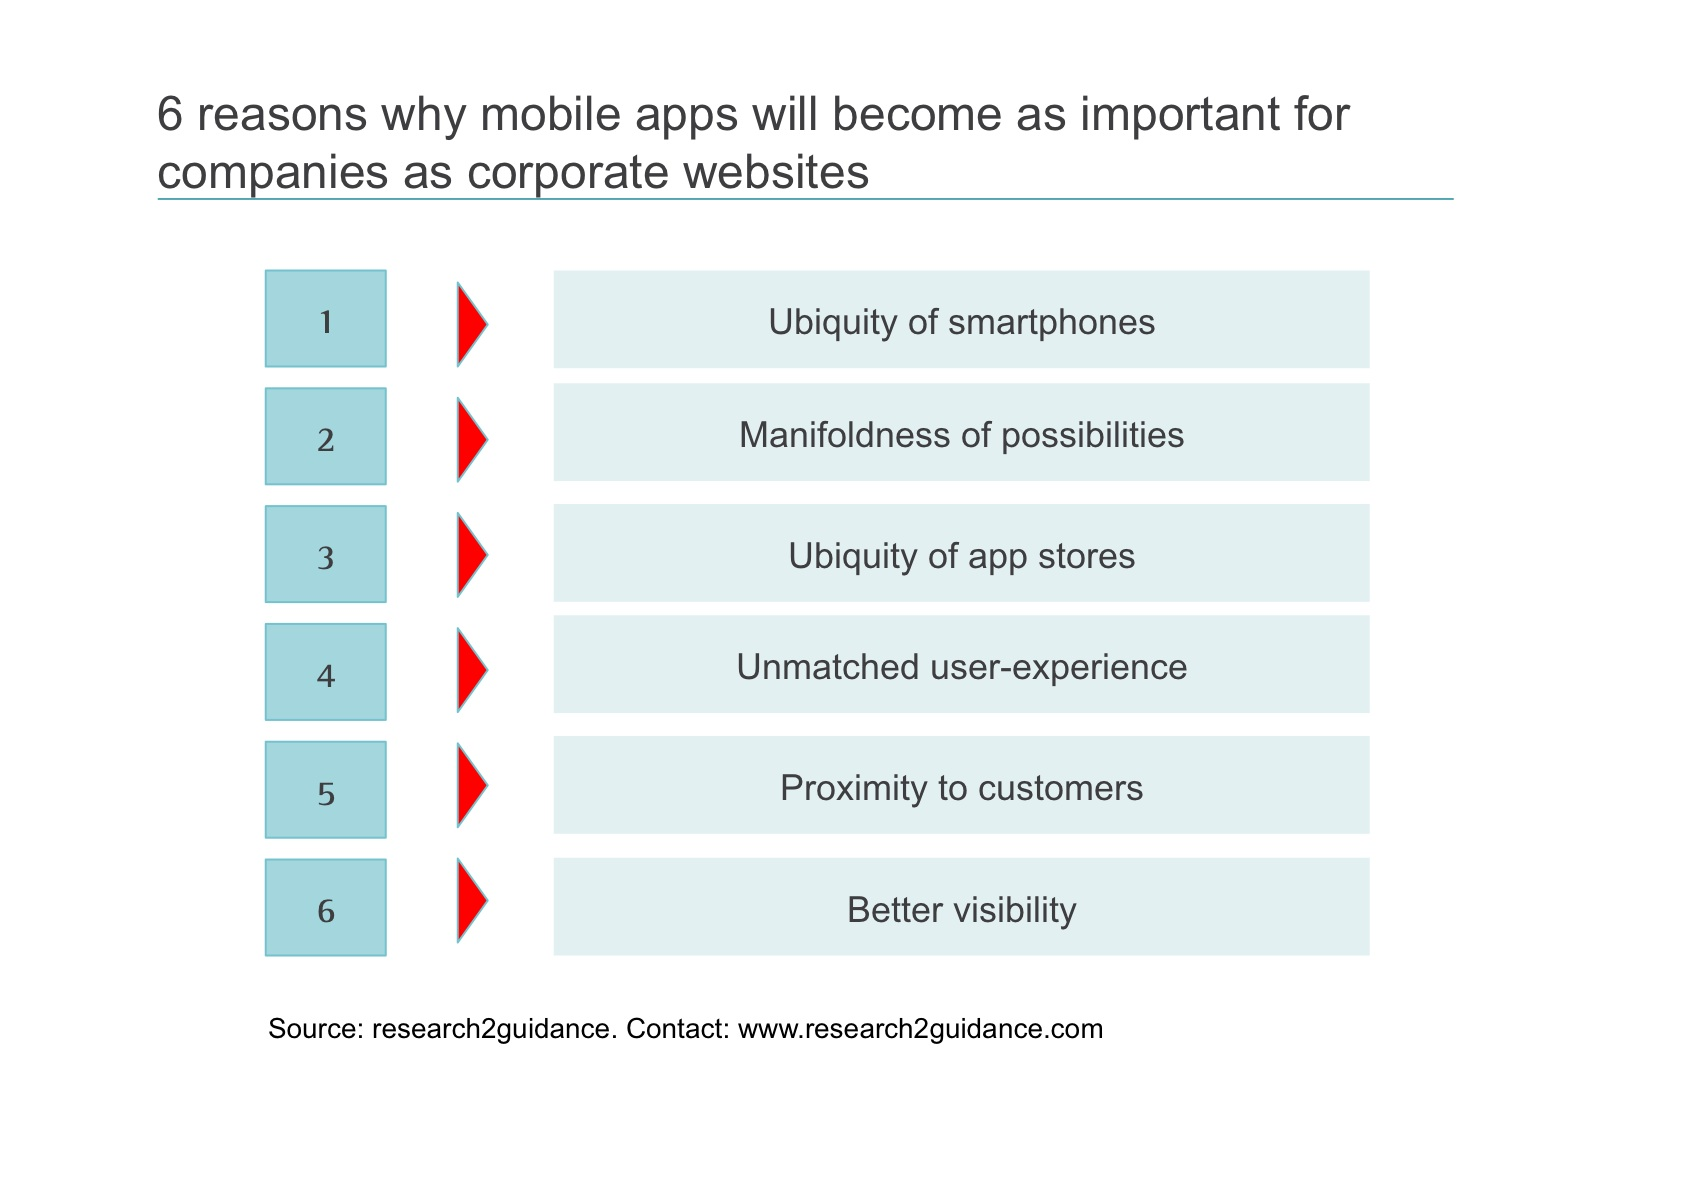 Importance of mobile apps for companies